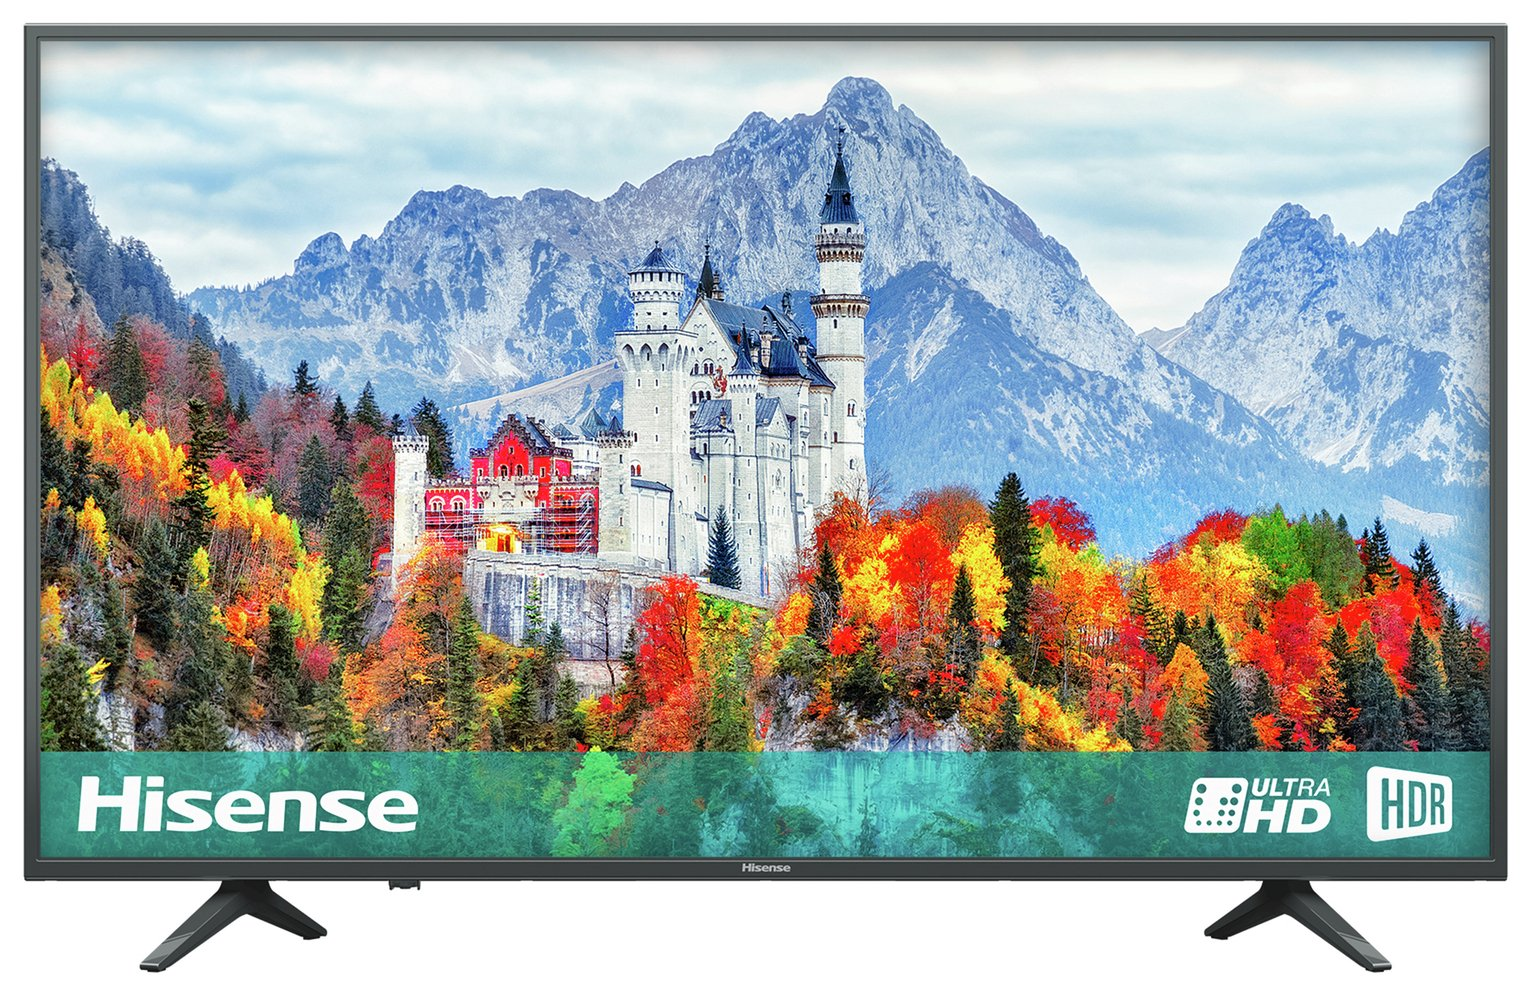 Hisense 55 Inch H55A6250UK Smart 4K UHD TV with HDR